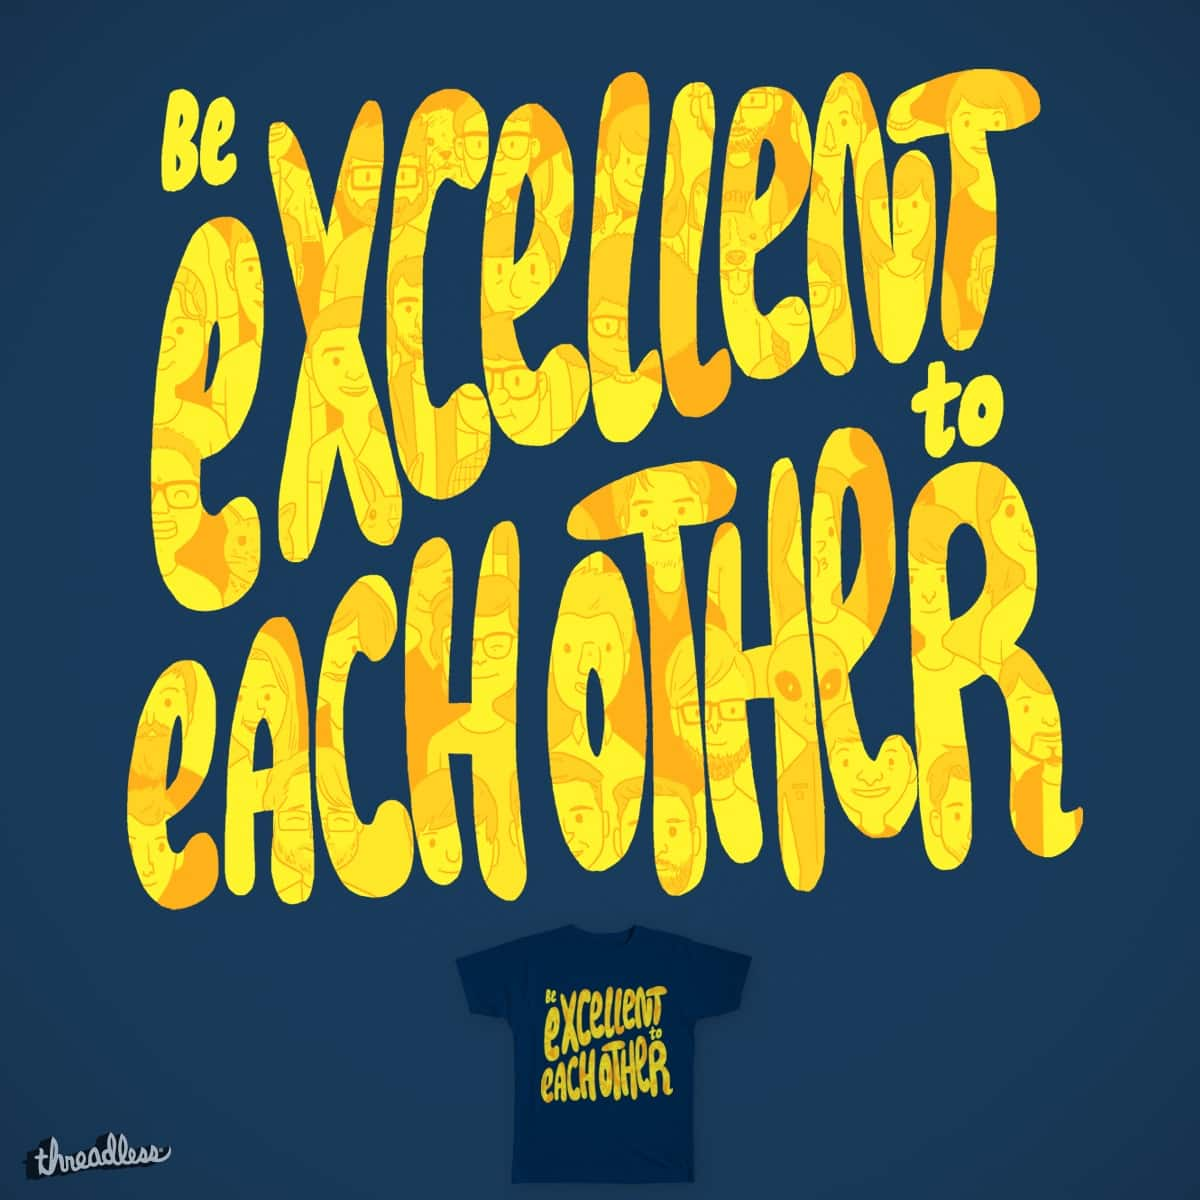 Be Excellent to Each Other by mike bautista on Threadless